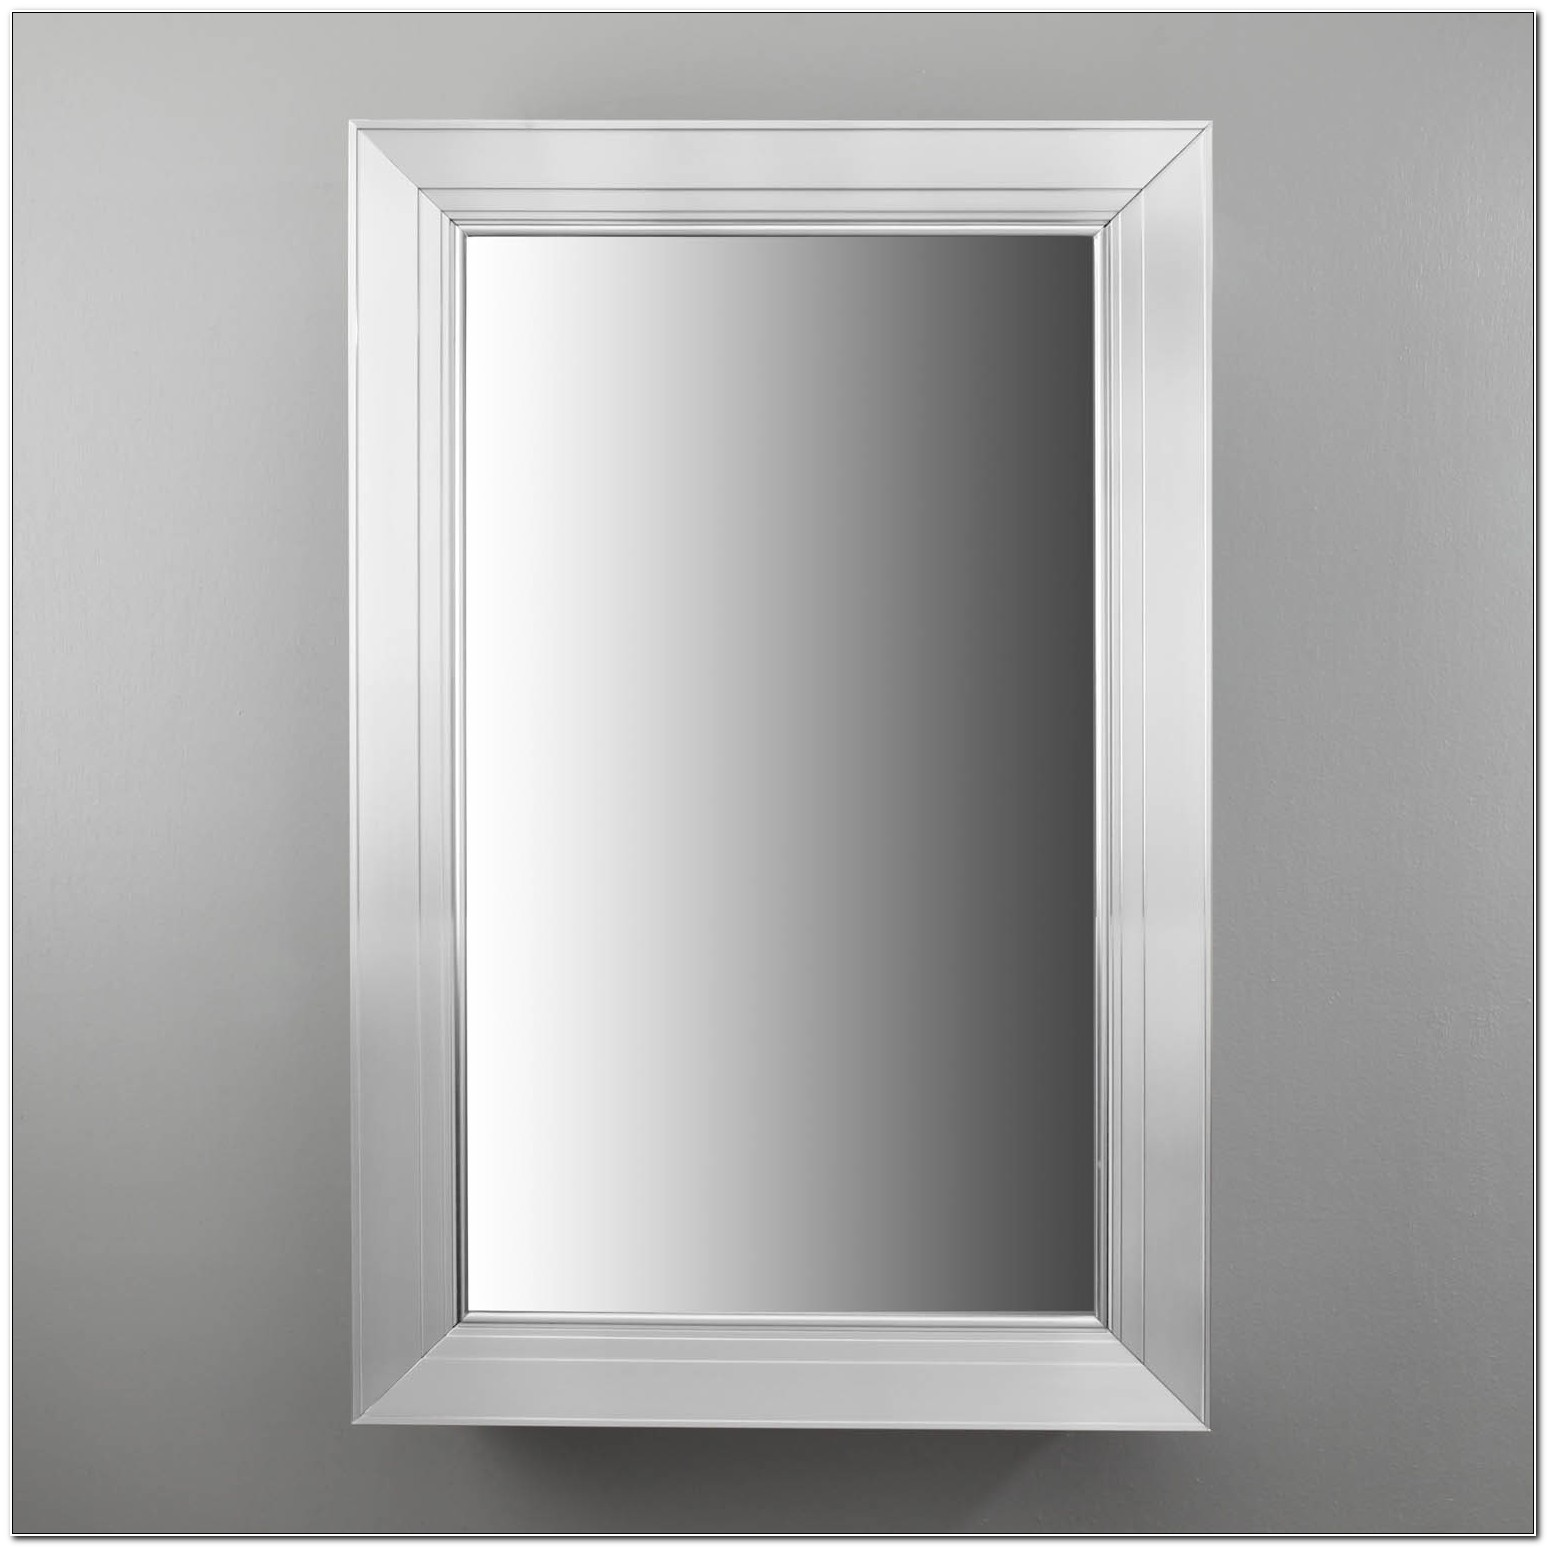 Brushed Nickel Recessed Medicine Cabinet From Robern